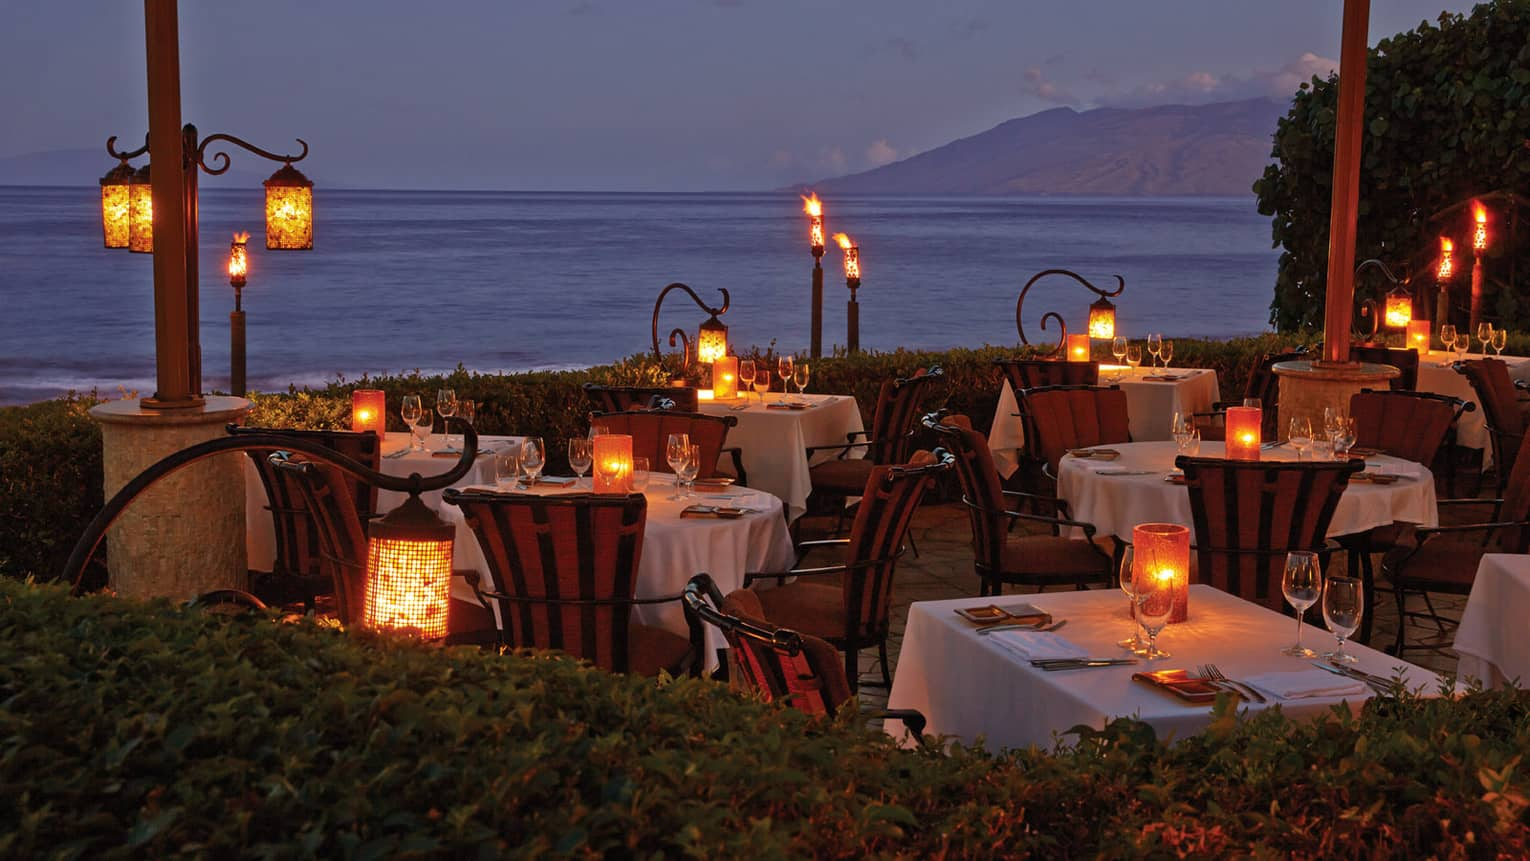 Ferraro restaurant terrace at night with square and round set tables, lit candles, ocean view